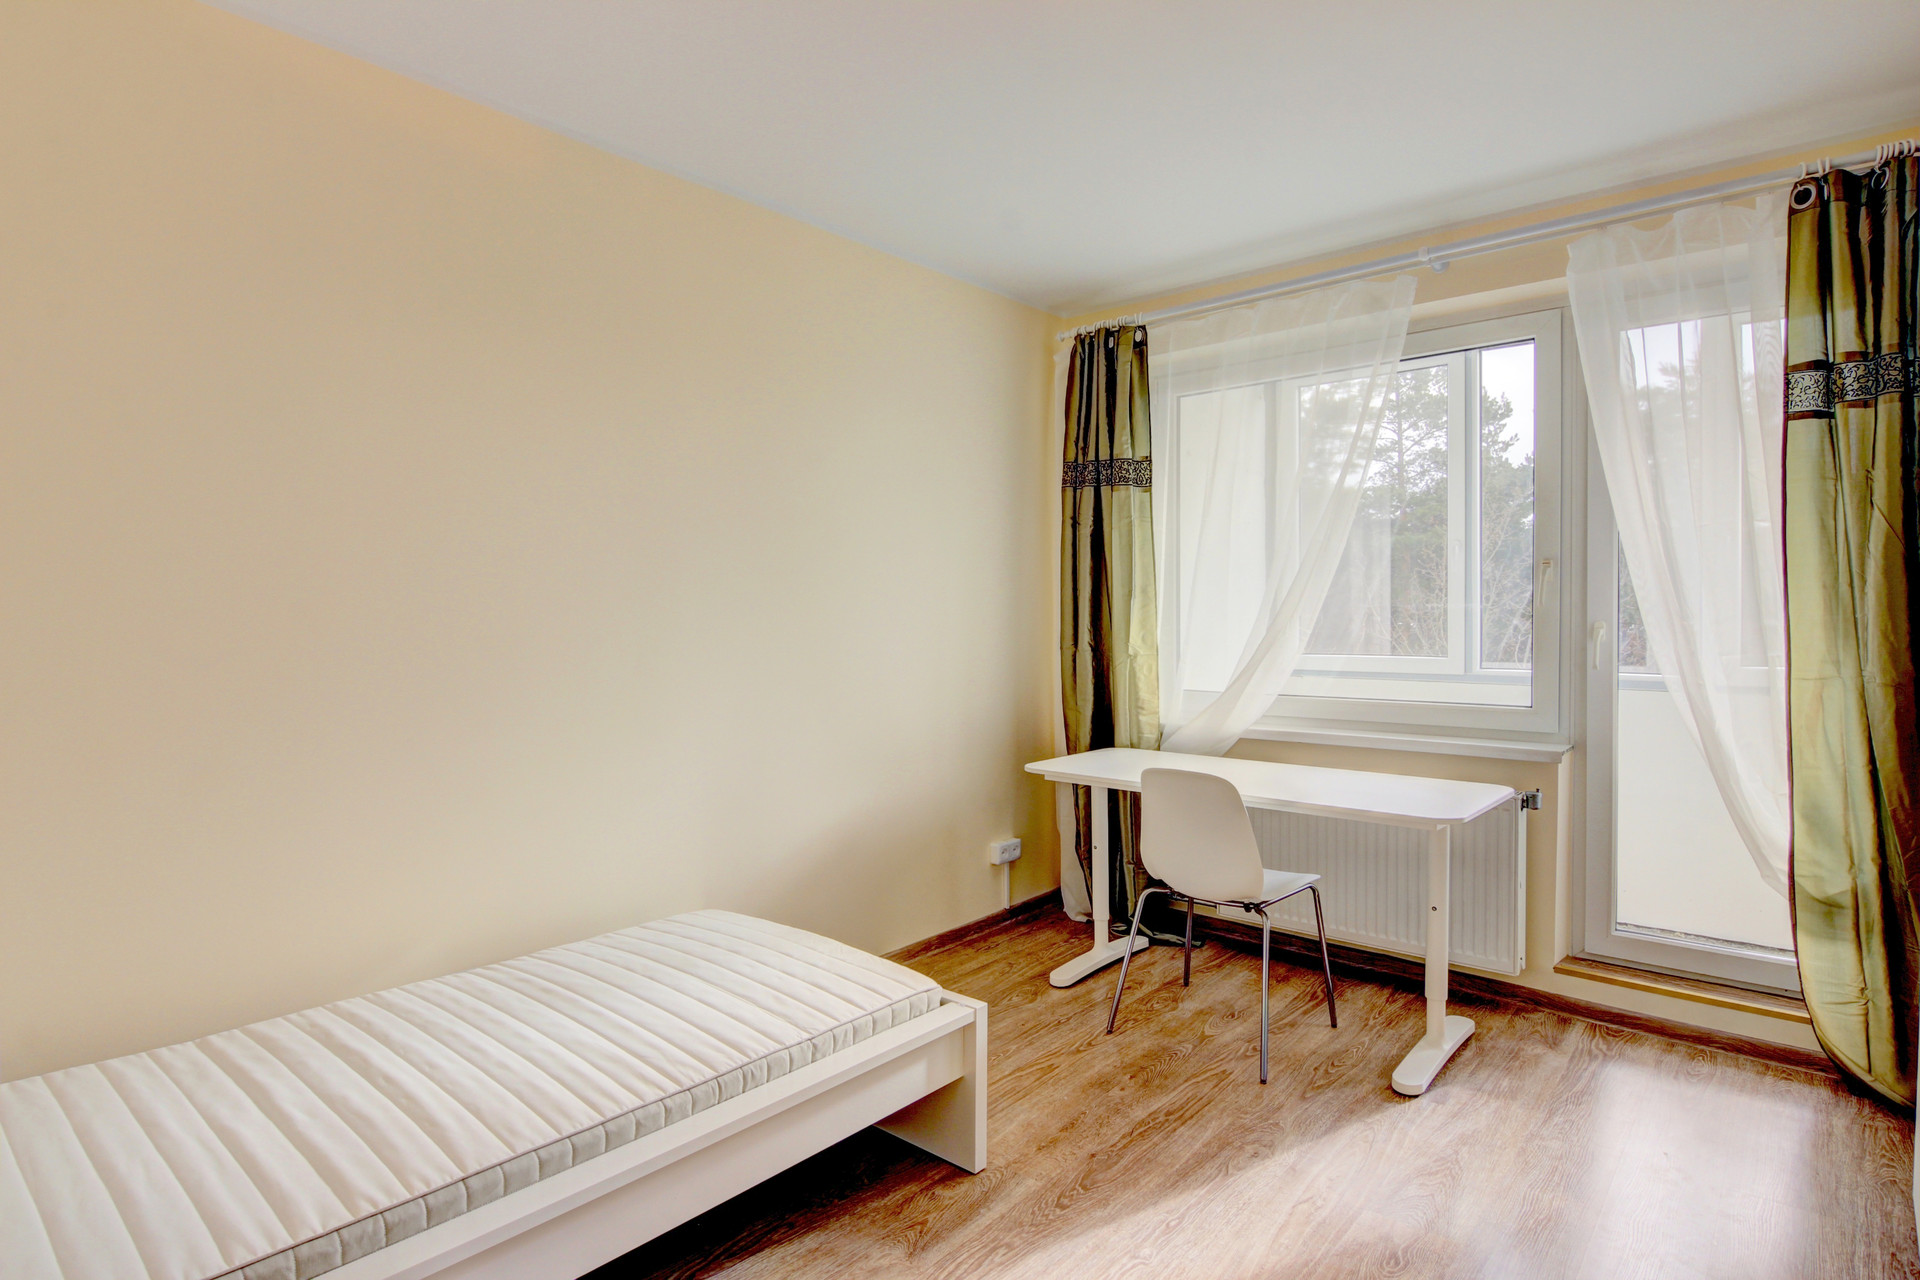 Cozy and Welcoming Room in 5-Room Apartment in Baltupiai